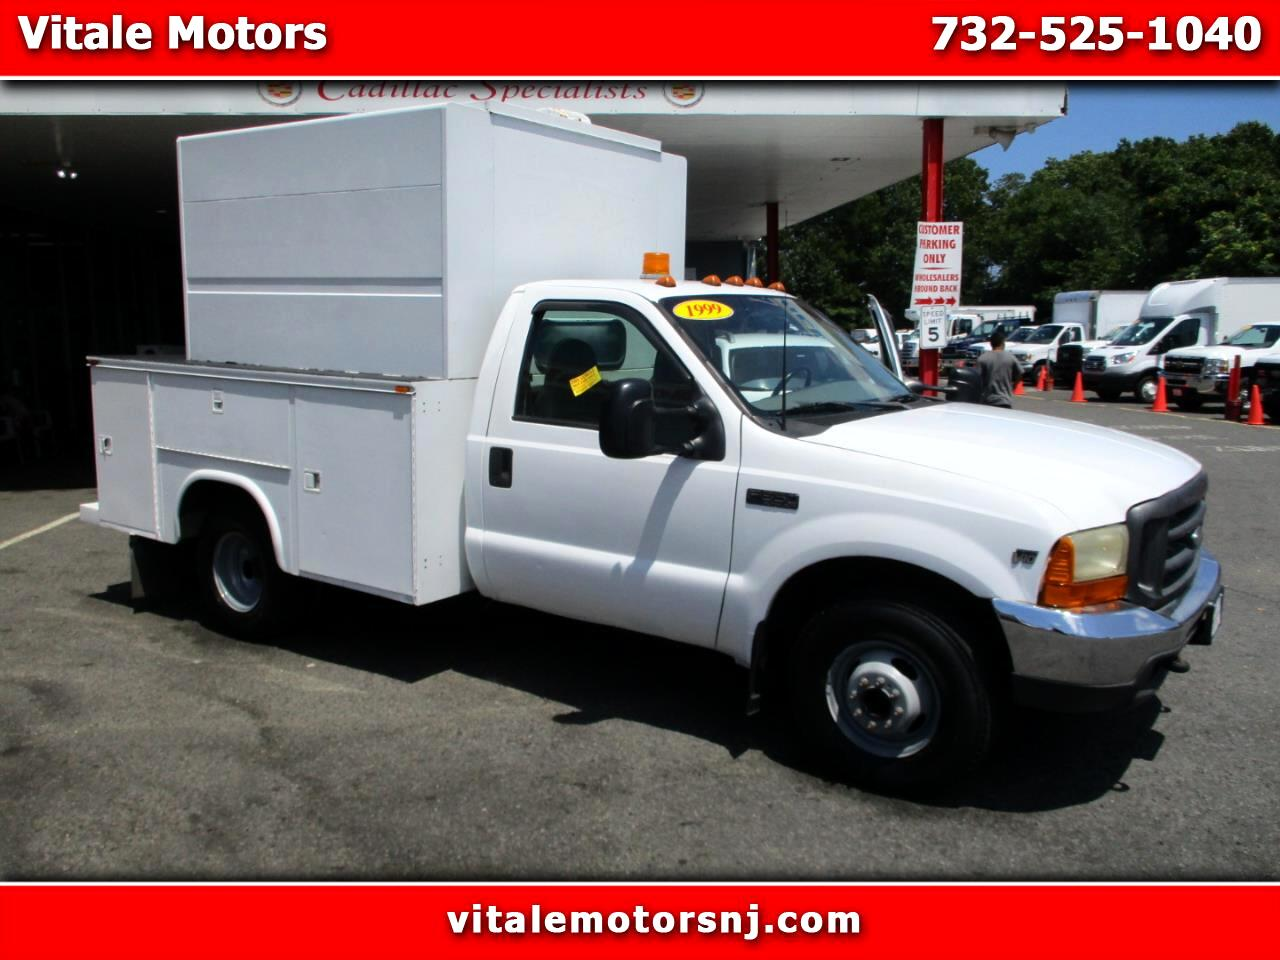 1999 Ford F-350 SD REG. CAB UTILITY BOX